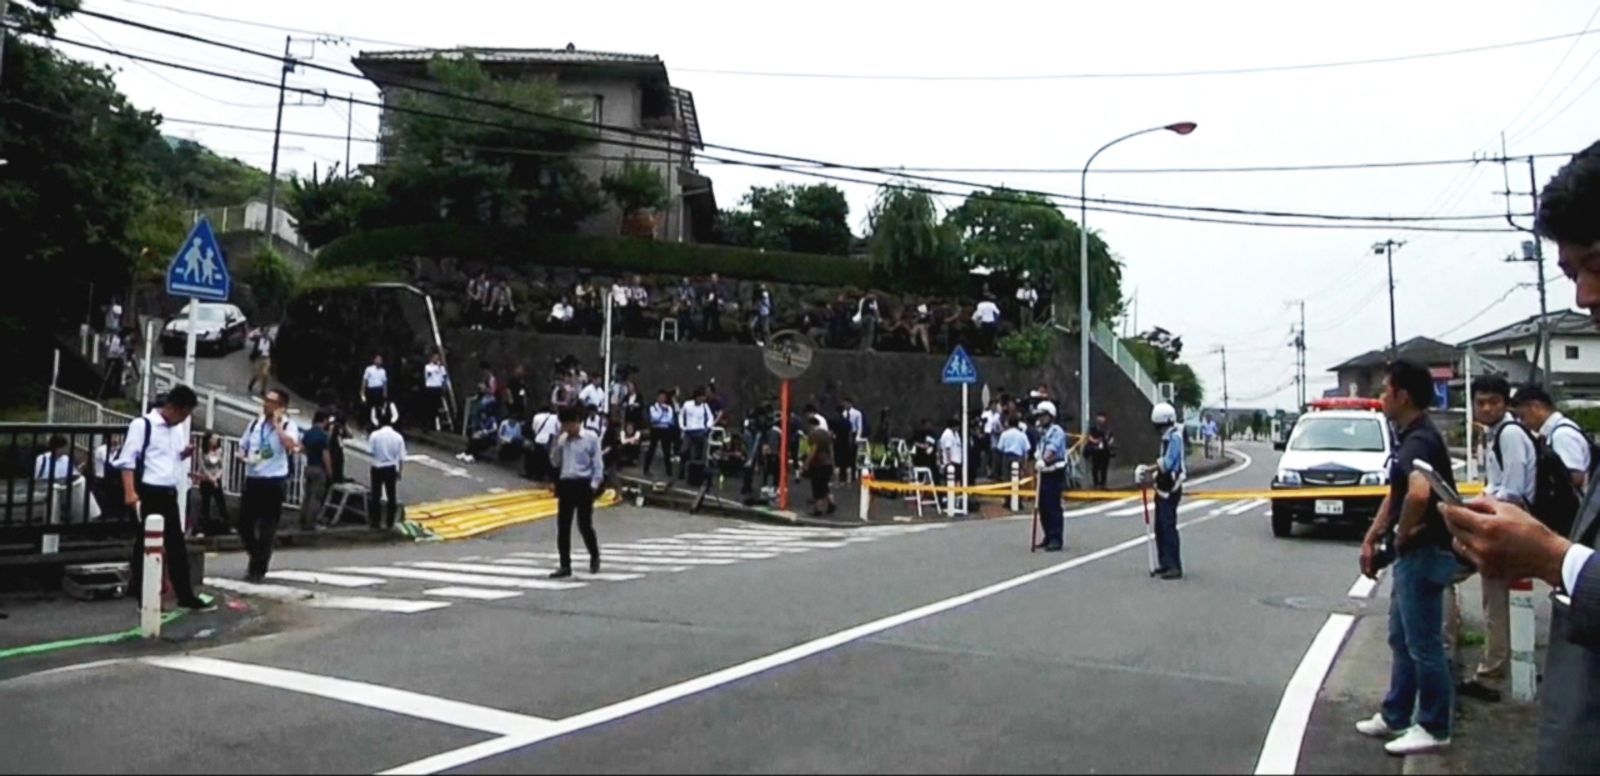 VIDEO: Some 19 people were killed and about 20 others were injured in a stabbing attack at a disabled living facility near Tokyo, according to the Sagamihara City Fire Department.